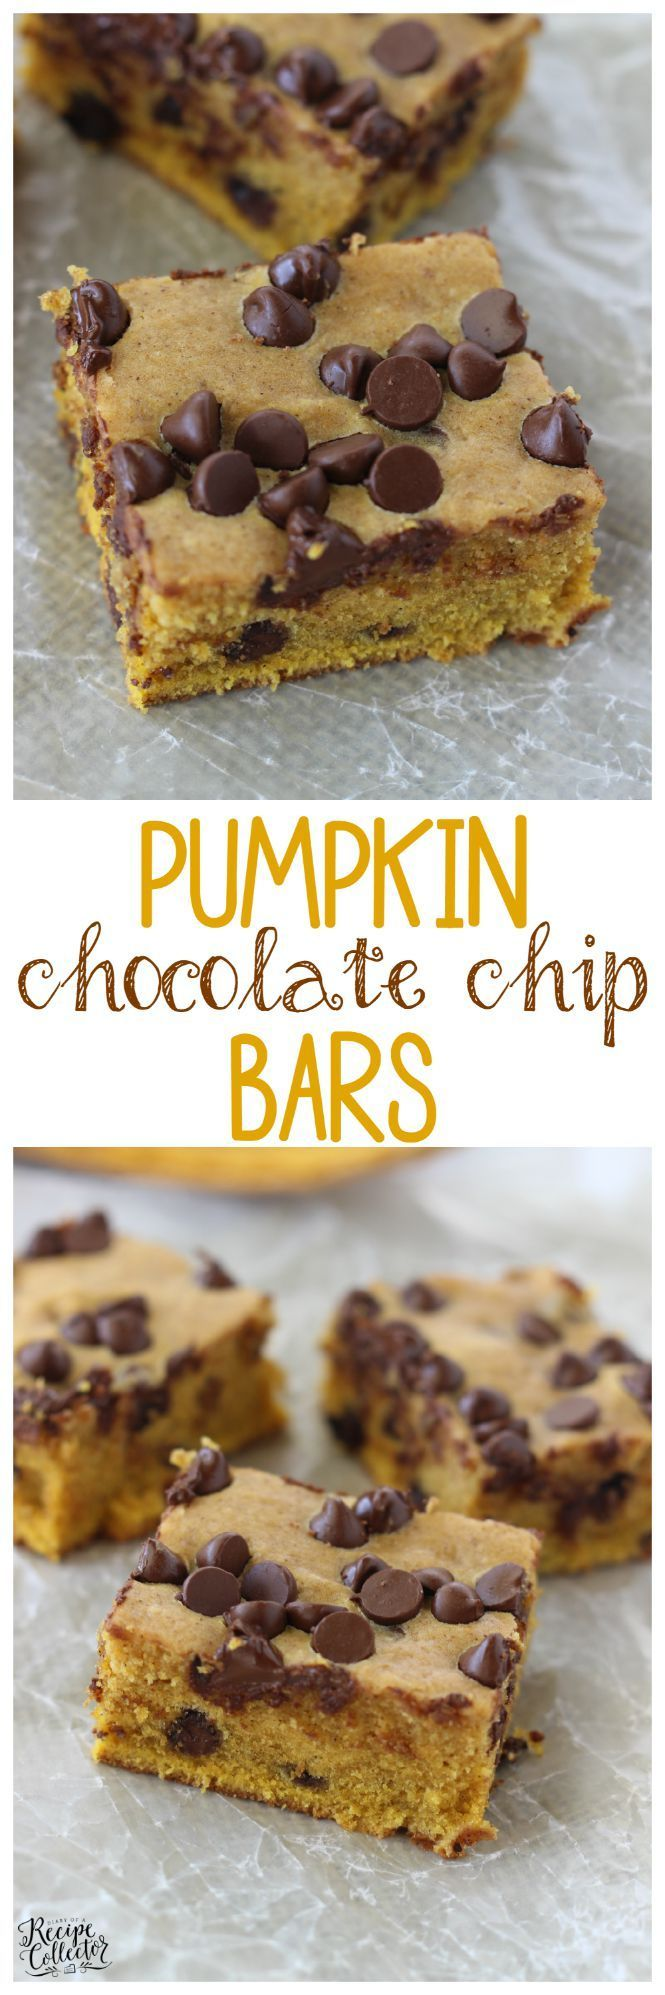 Pumpkin Chocolate Chip Bars - A quick and easy cookie bar perfect for Fall!